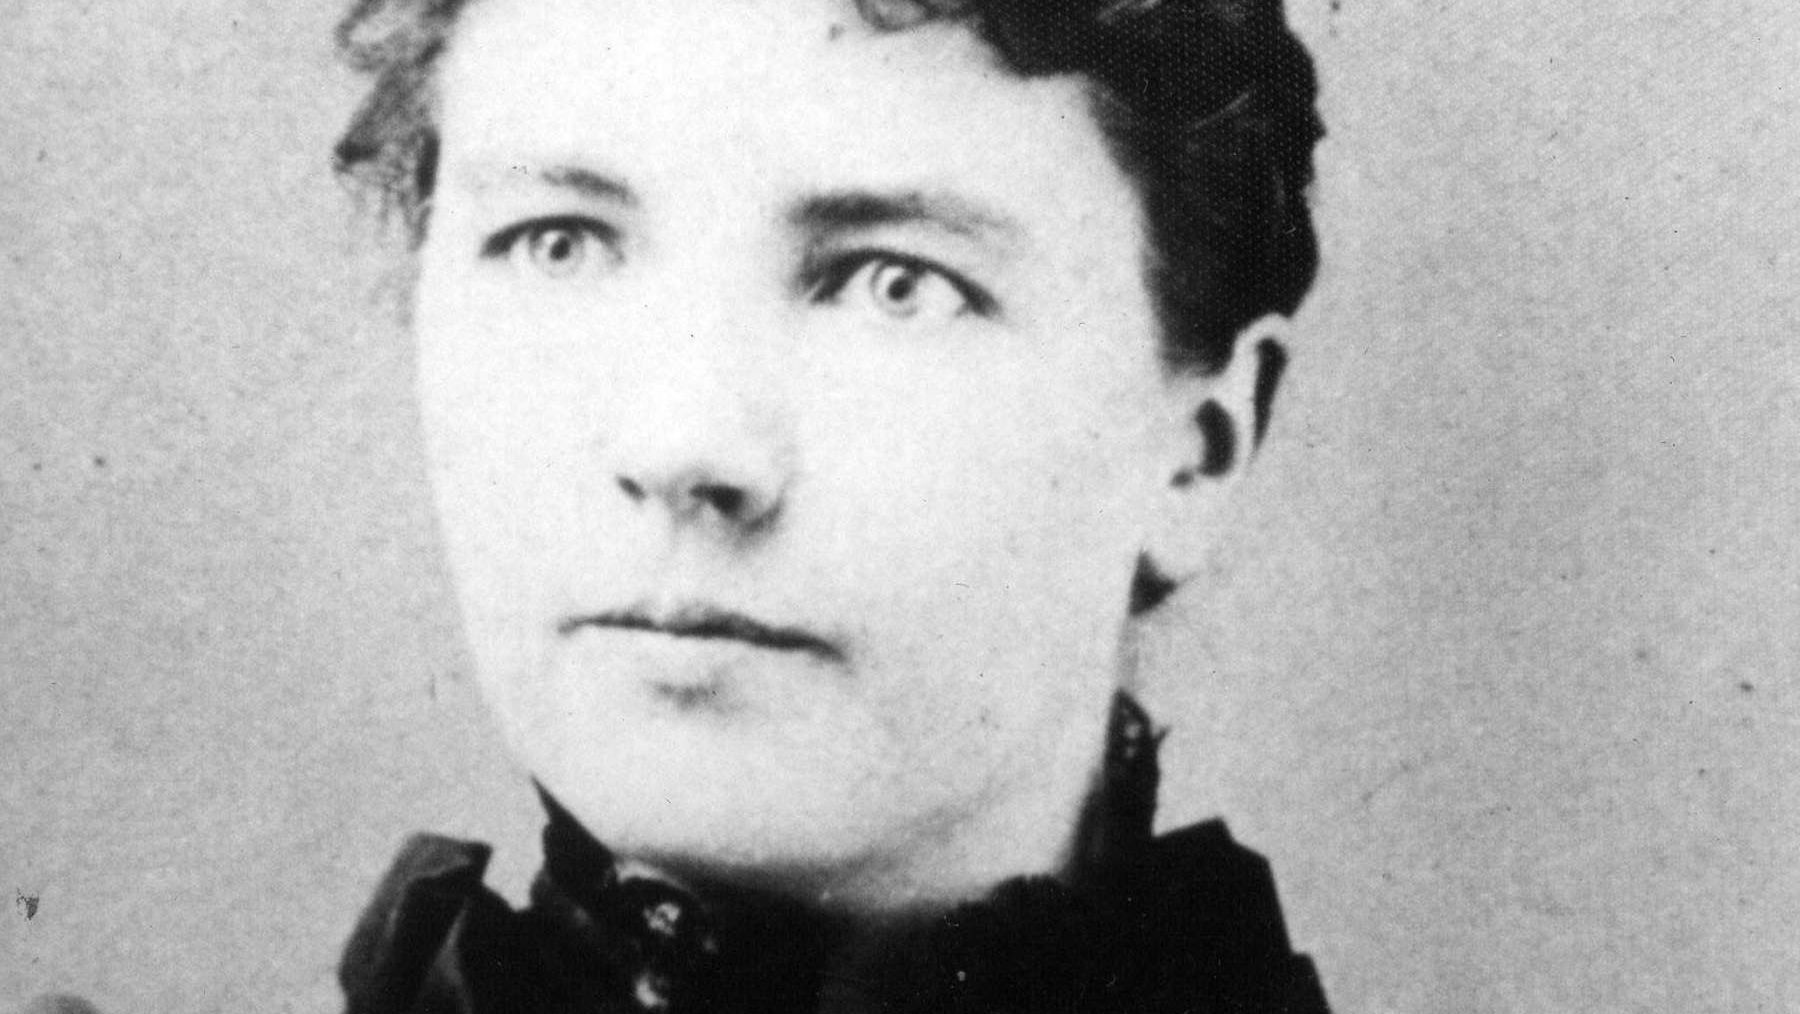 Facts About 'Little House on the Prairie' Author Laura Ingalls Wilder